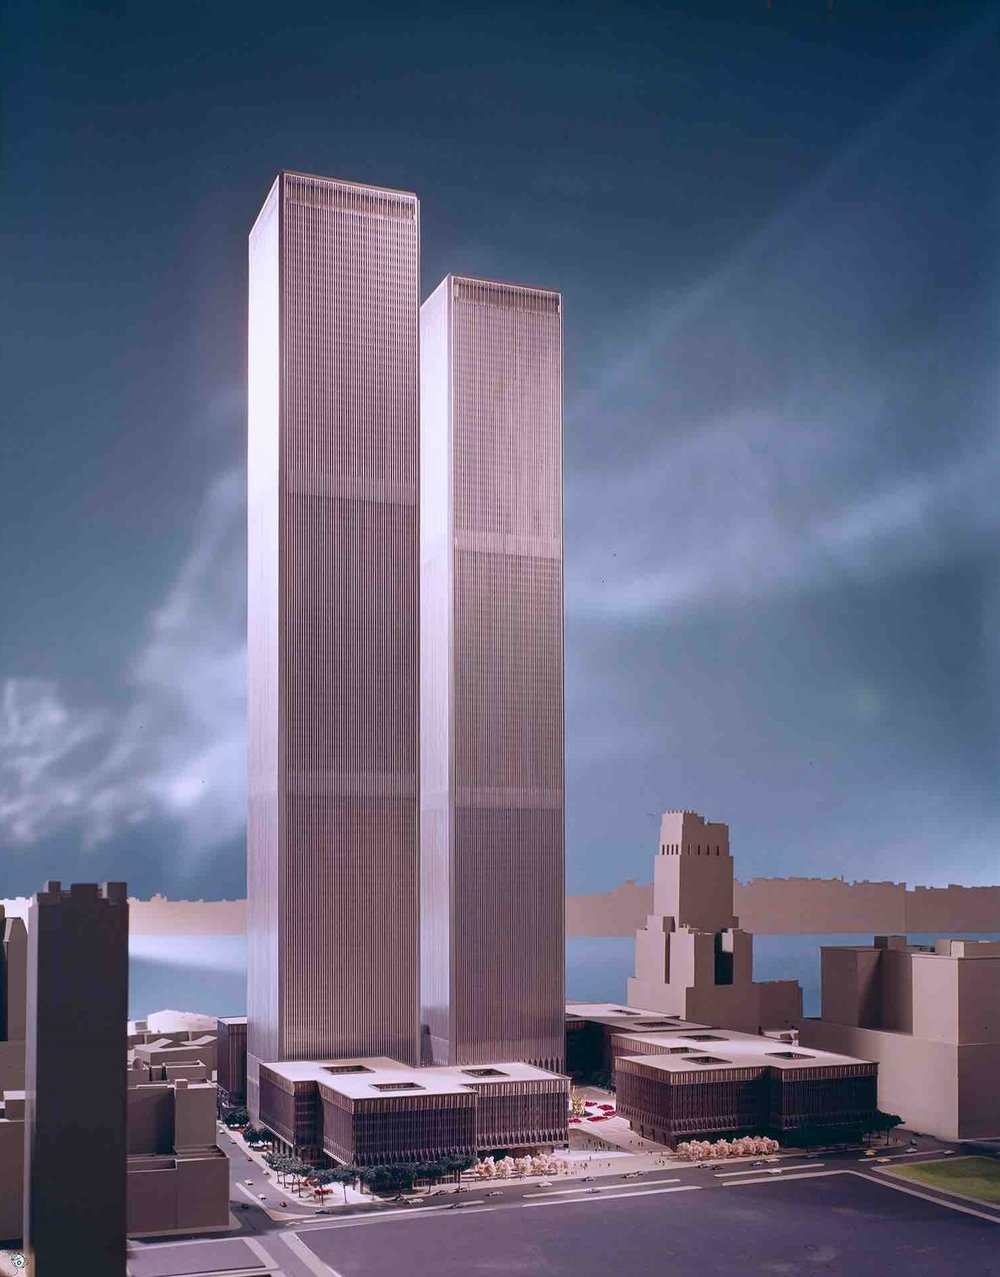 Minoru Yamasaki, World Trade Towers (New York, NY) 1973